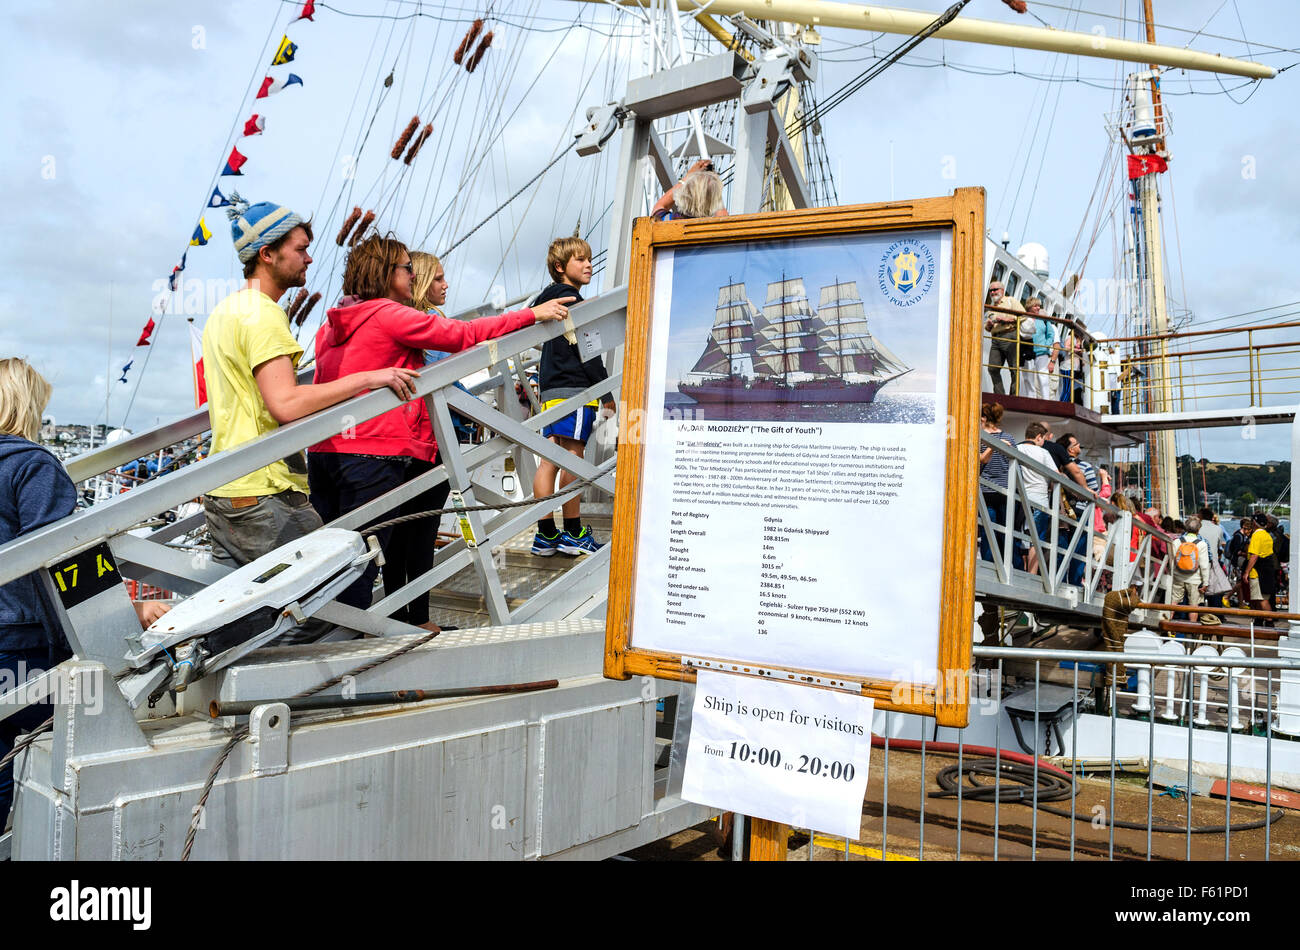 Crowds admire the vessels at the ' Tall Ships ' event in Falmouth, Cornwall, UK - Stock Image